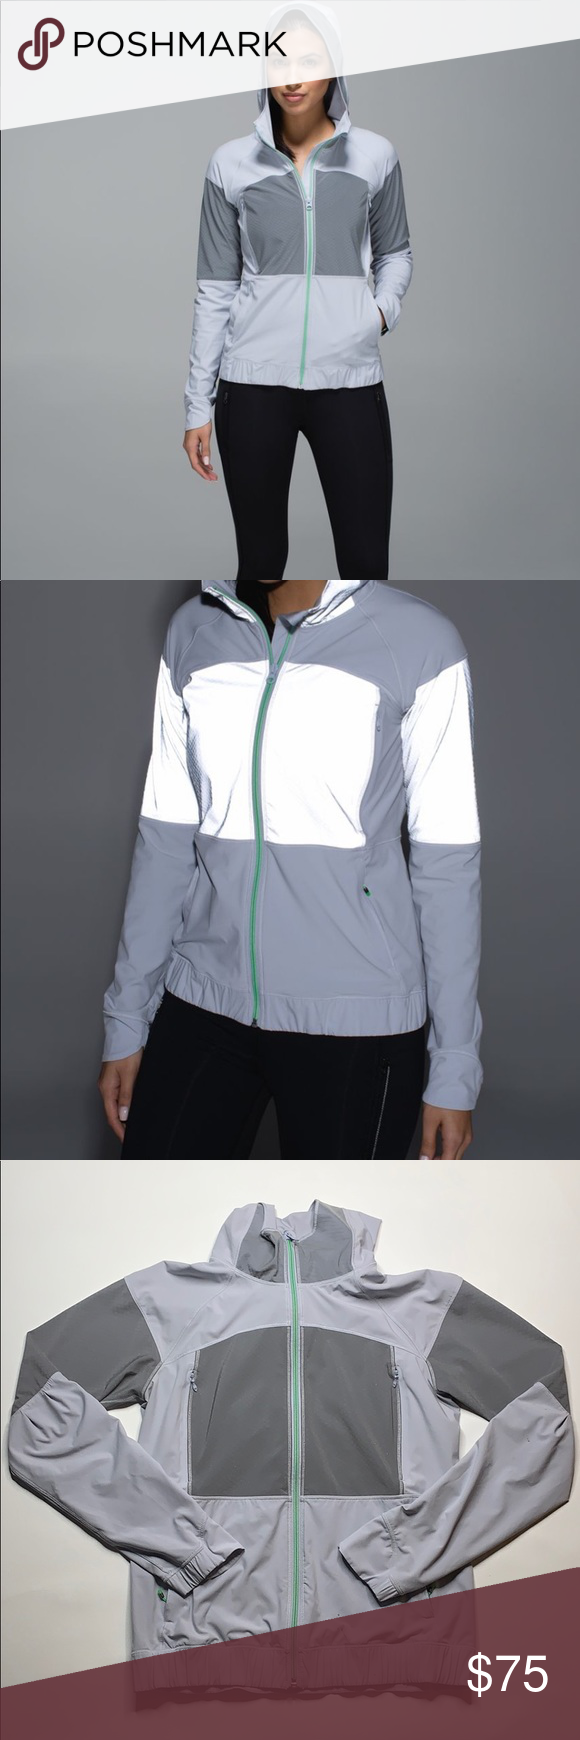 Lululemon reflective full zip hooded jacket Clothes